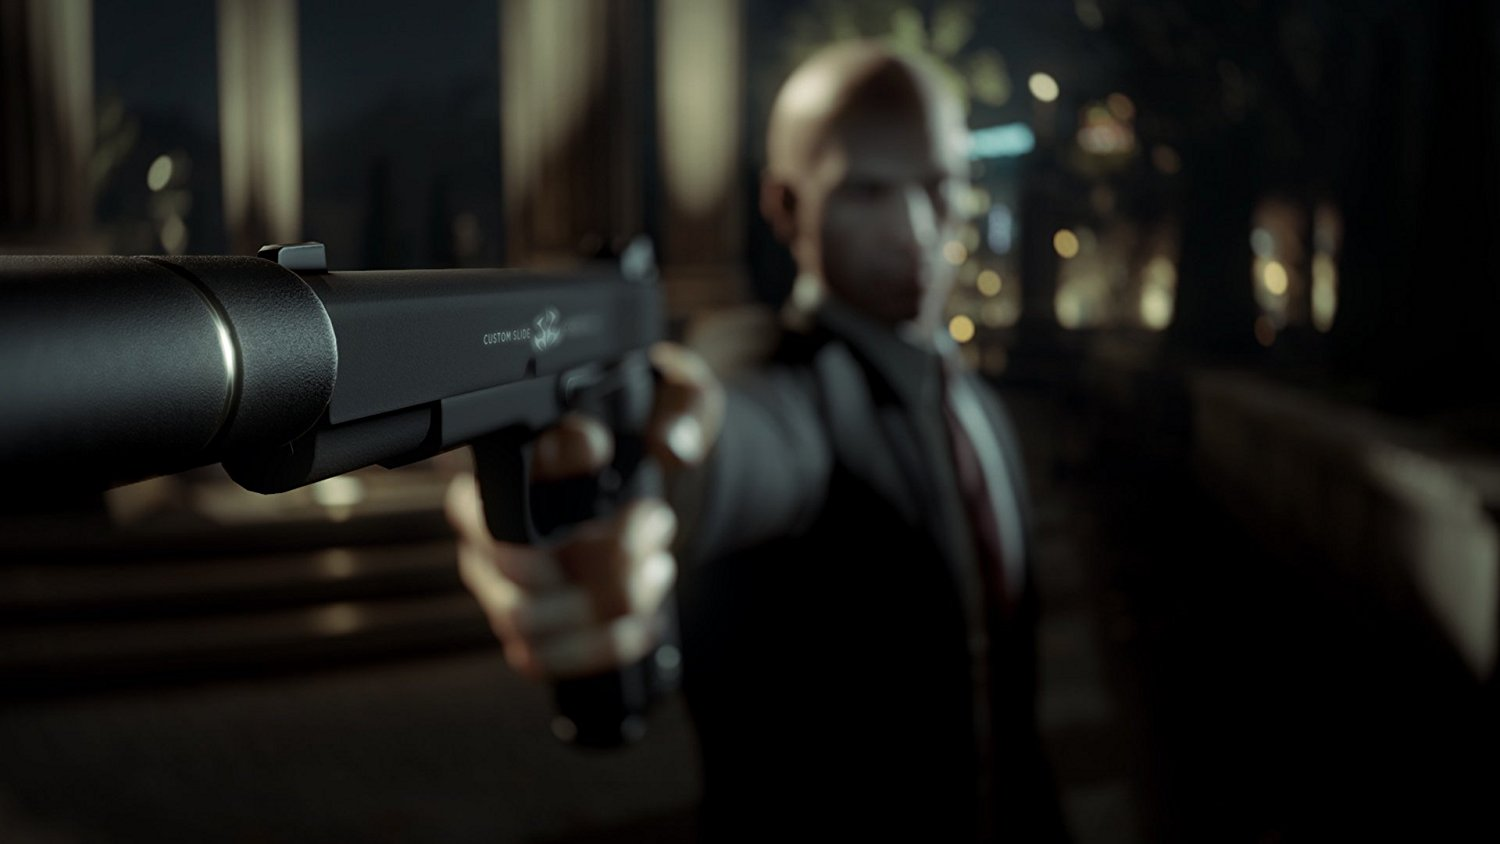 Hitman Torrent PC Game Download Full Version 1.13.1 Free For Windows